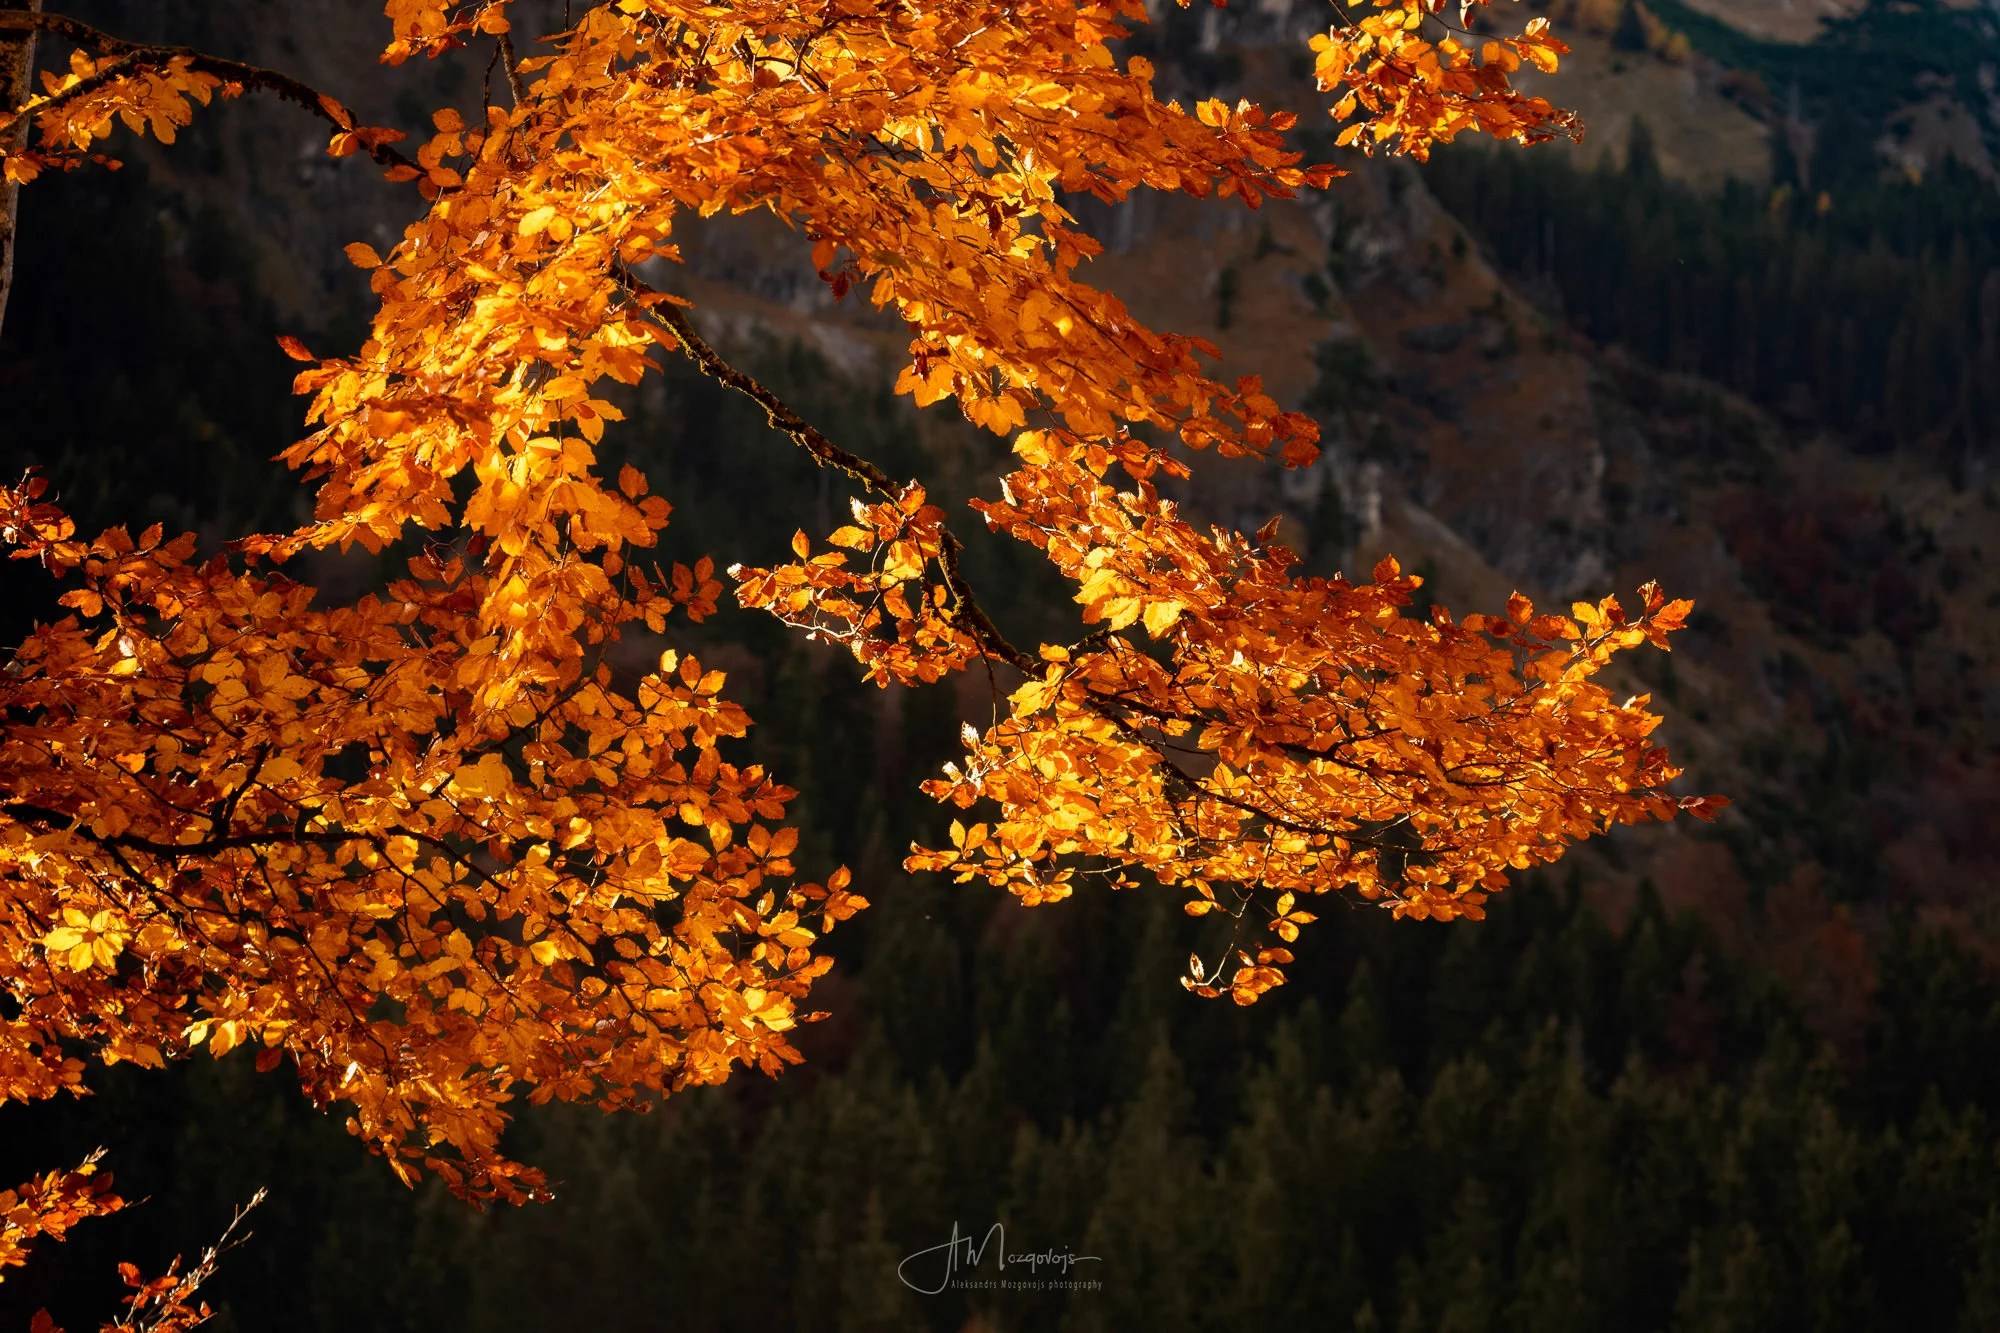 The foreground foliage is still lit and burning, while the background is already in the shadow